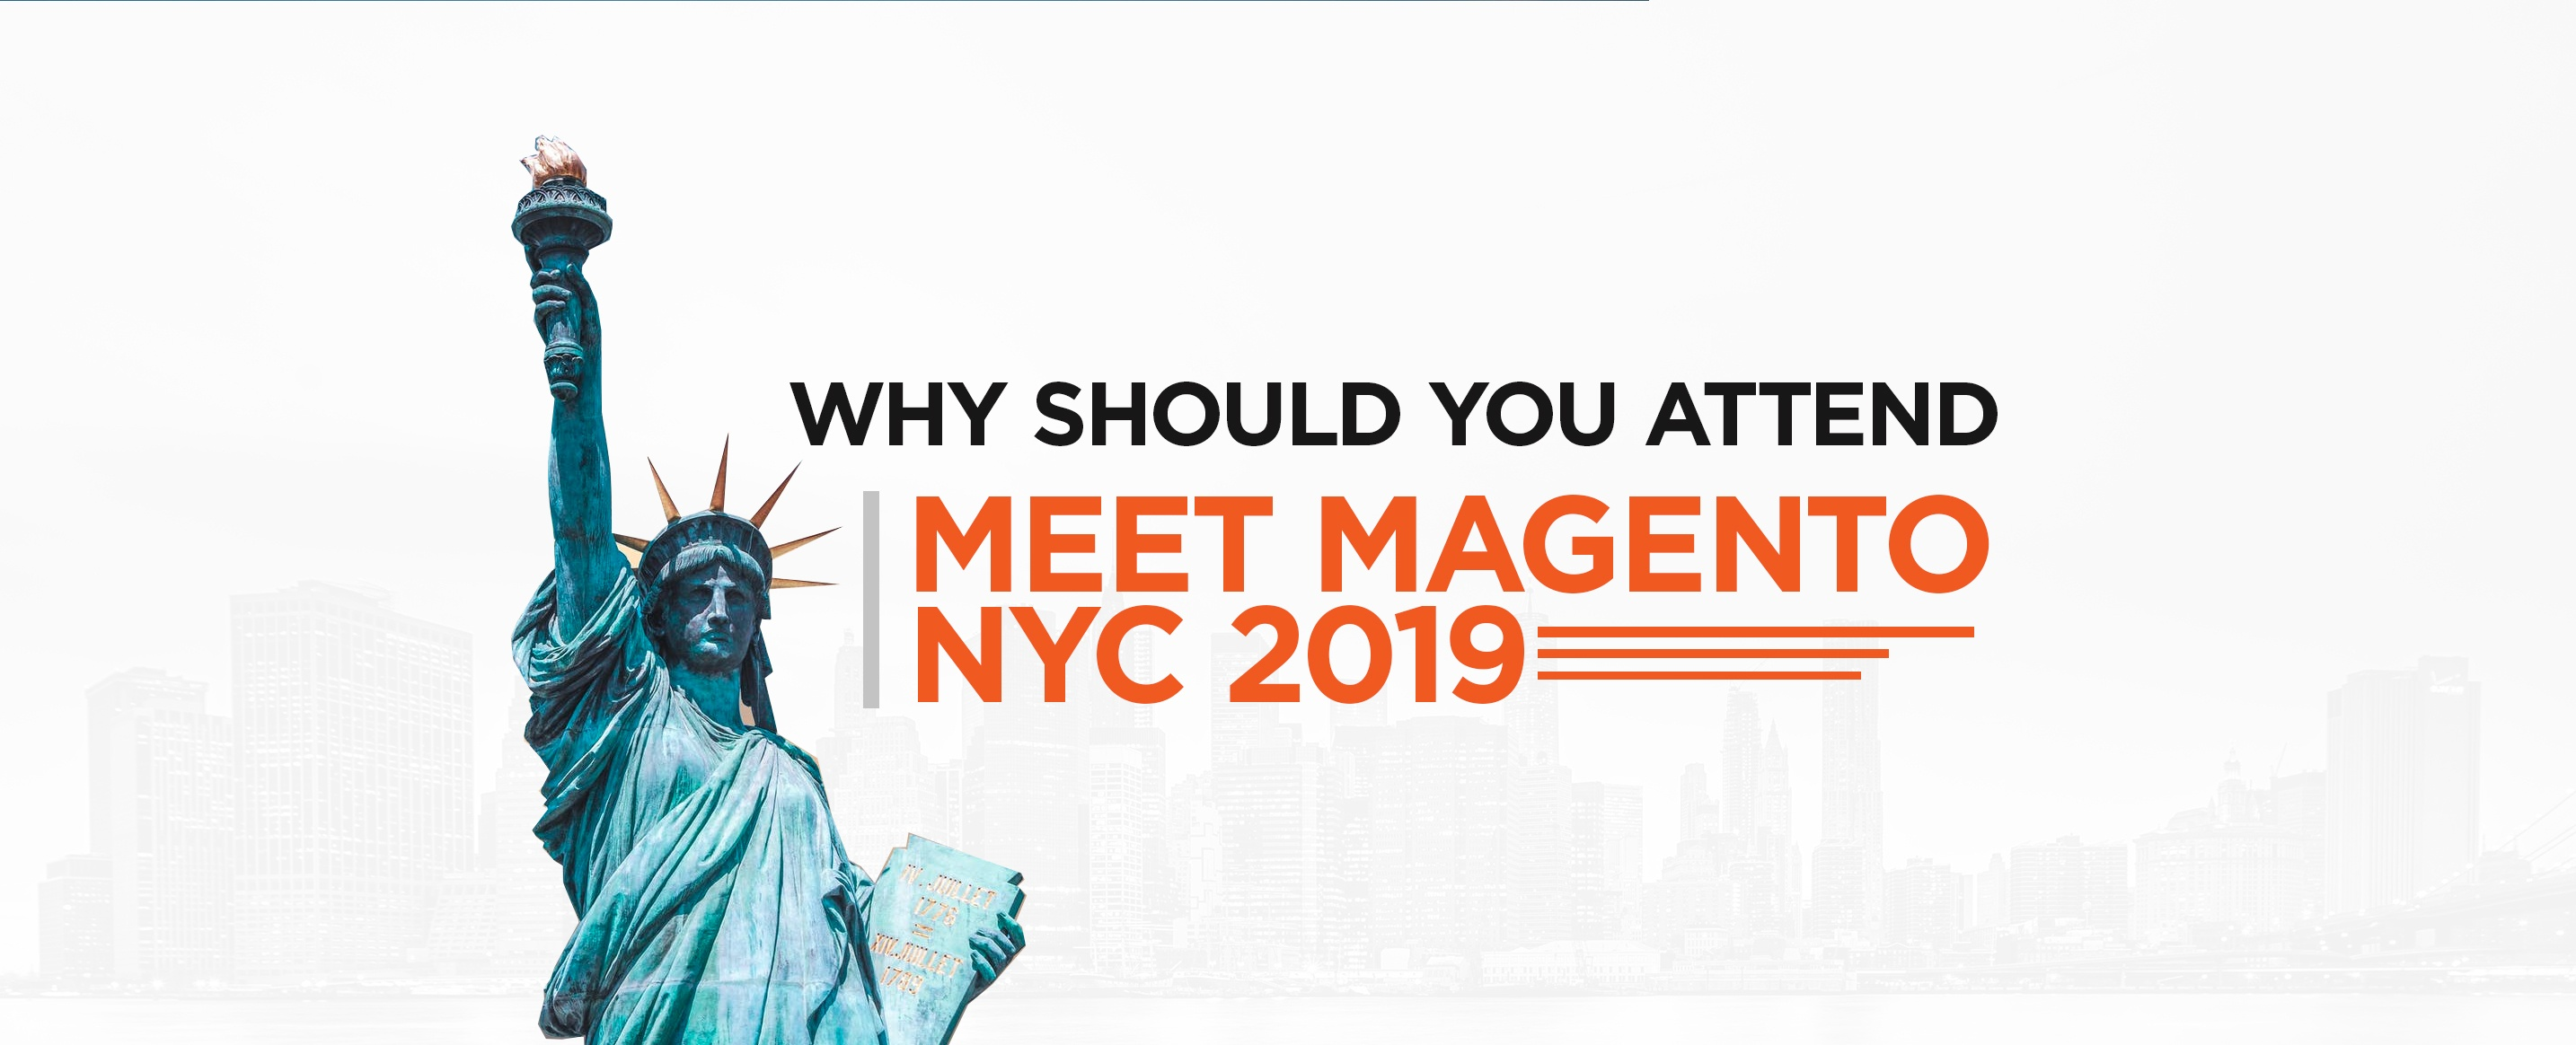 Why-should-you-attend-Meet-Magento-NYC-2019